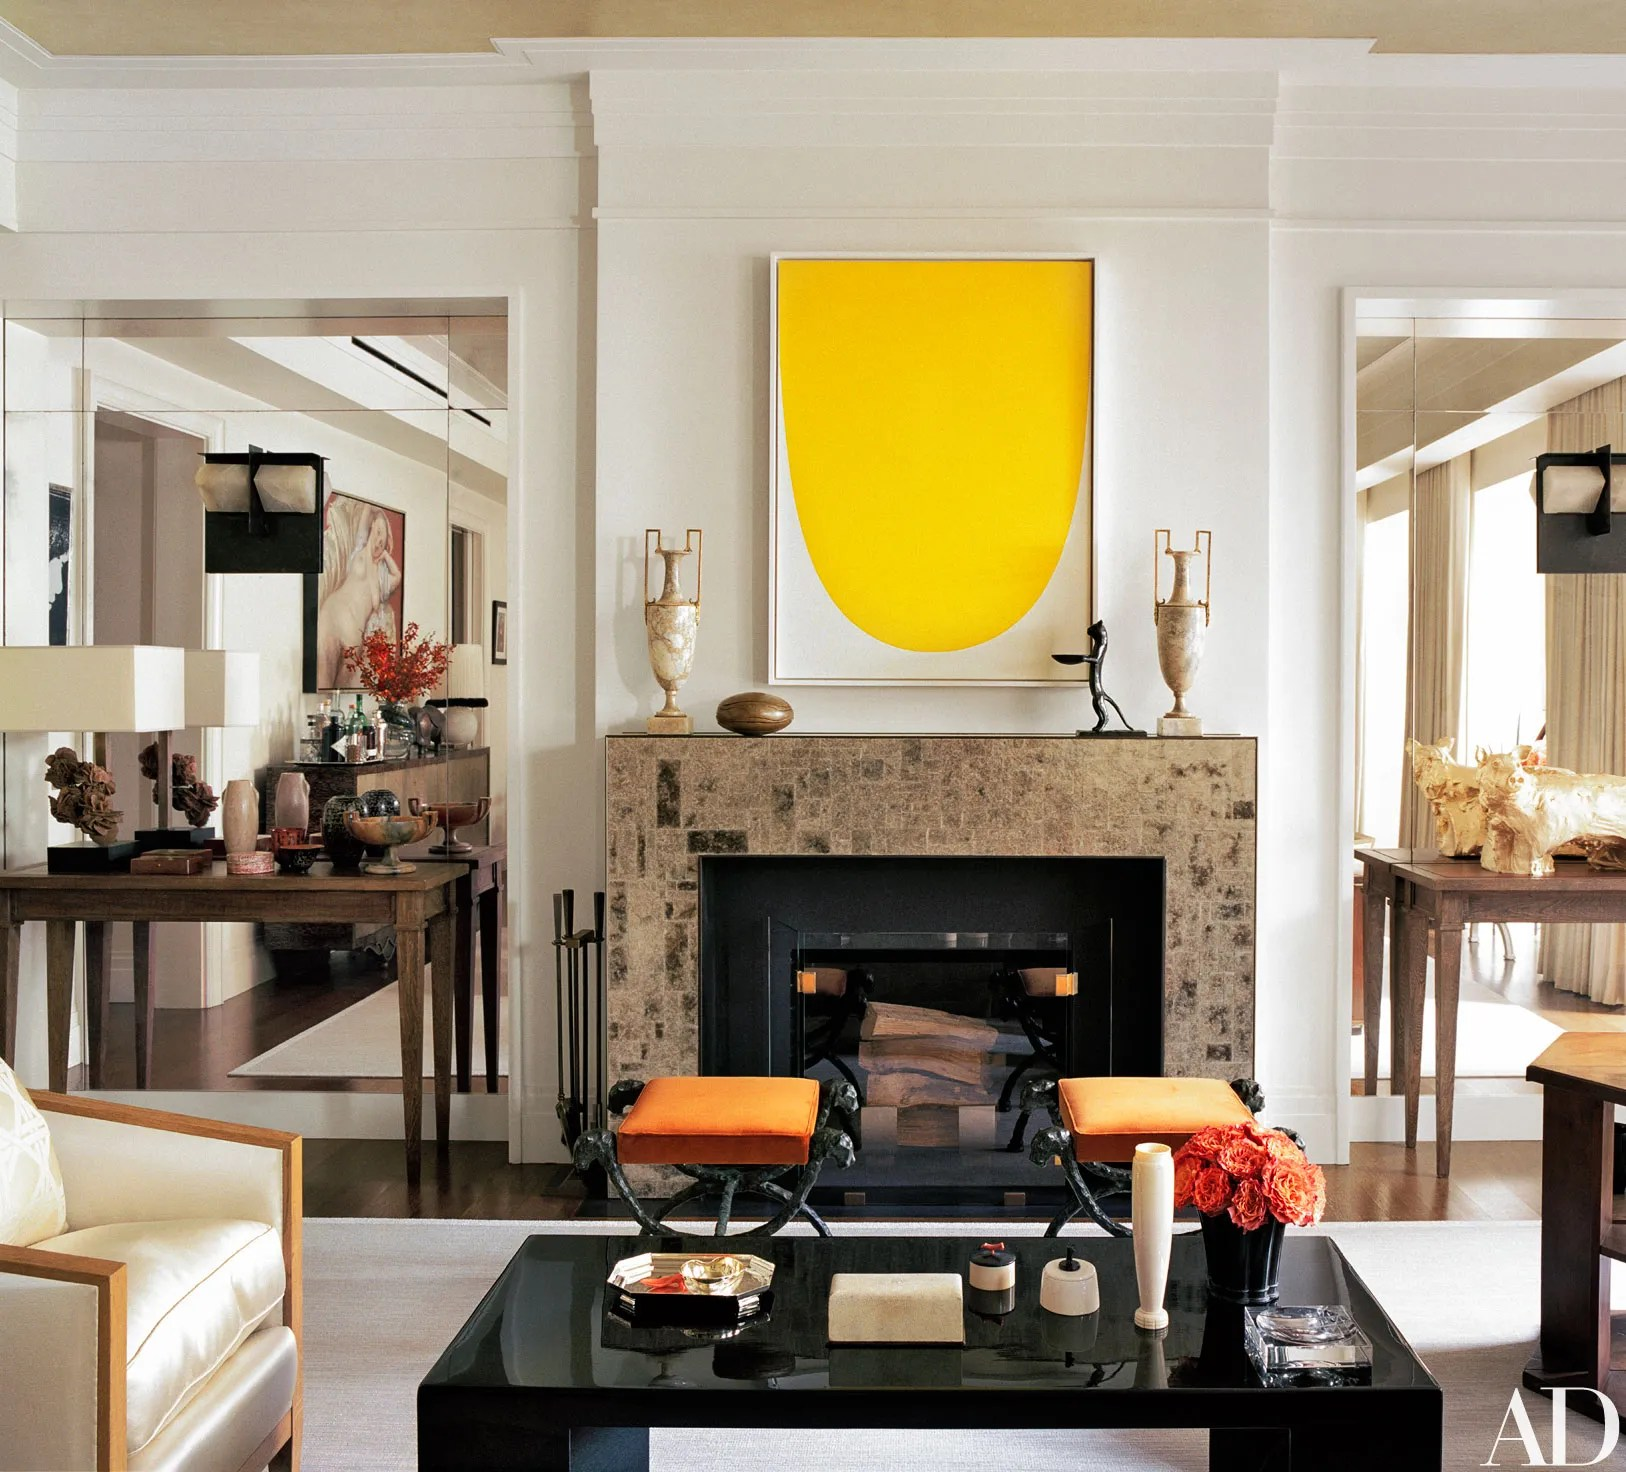 Best Kitchen Gallery: 26 Fashion Designers Including Diane Von Furstenberg And Isaac of Fashion Designer Homes  on rachelxblog.com